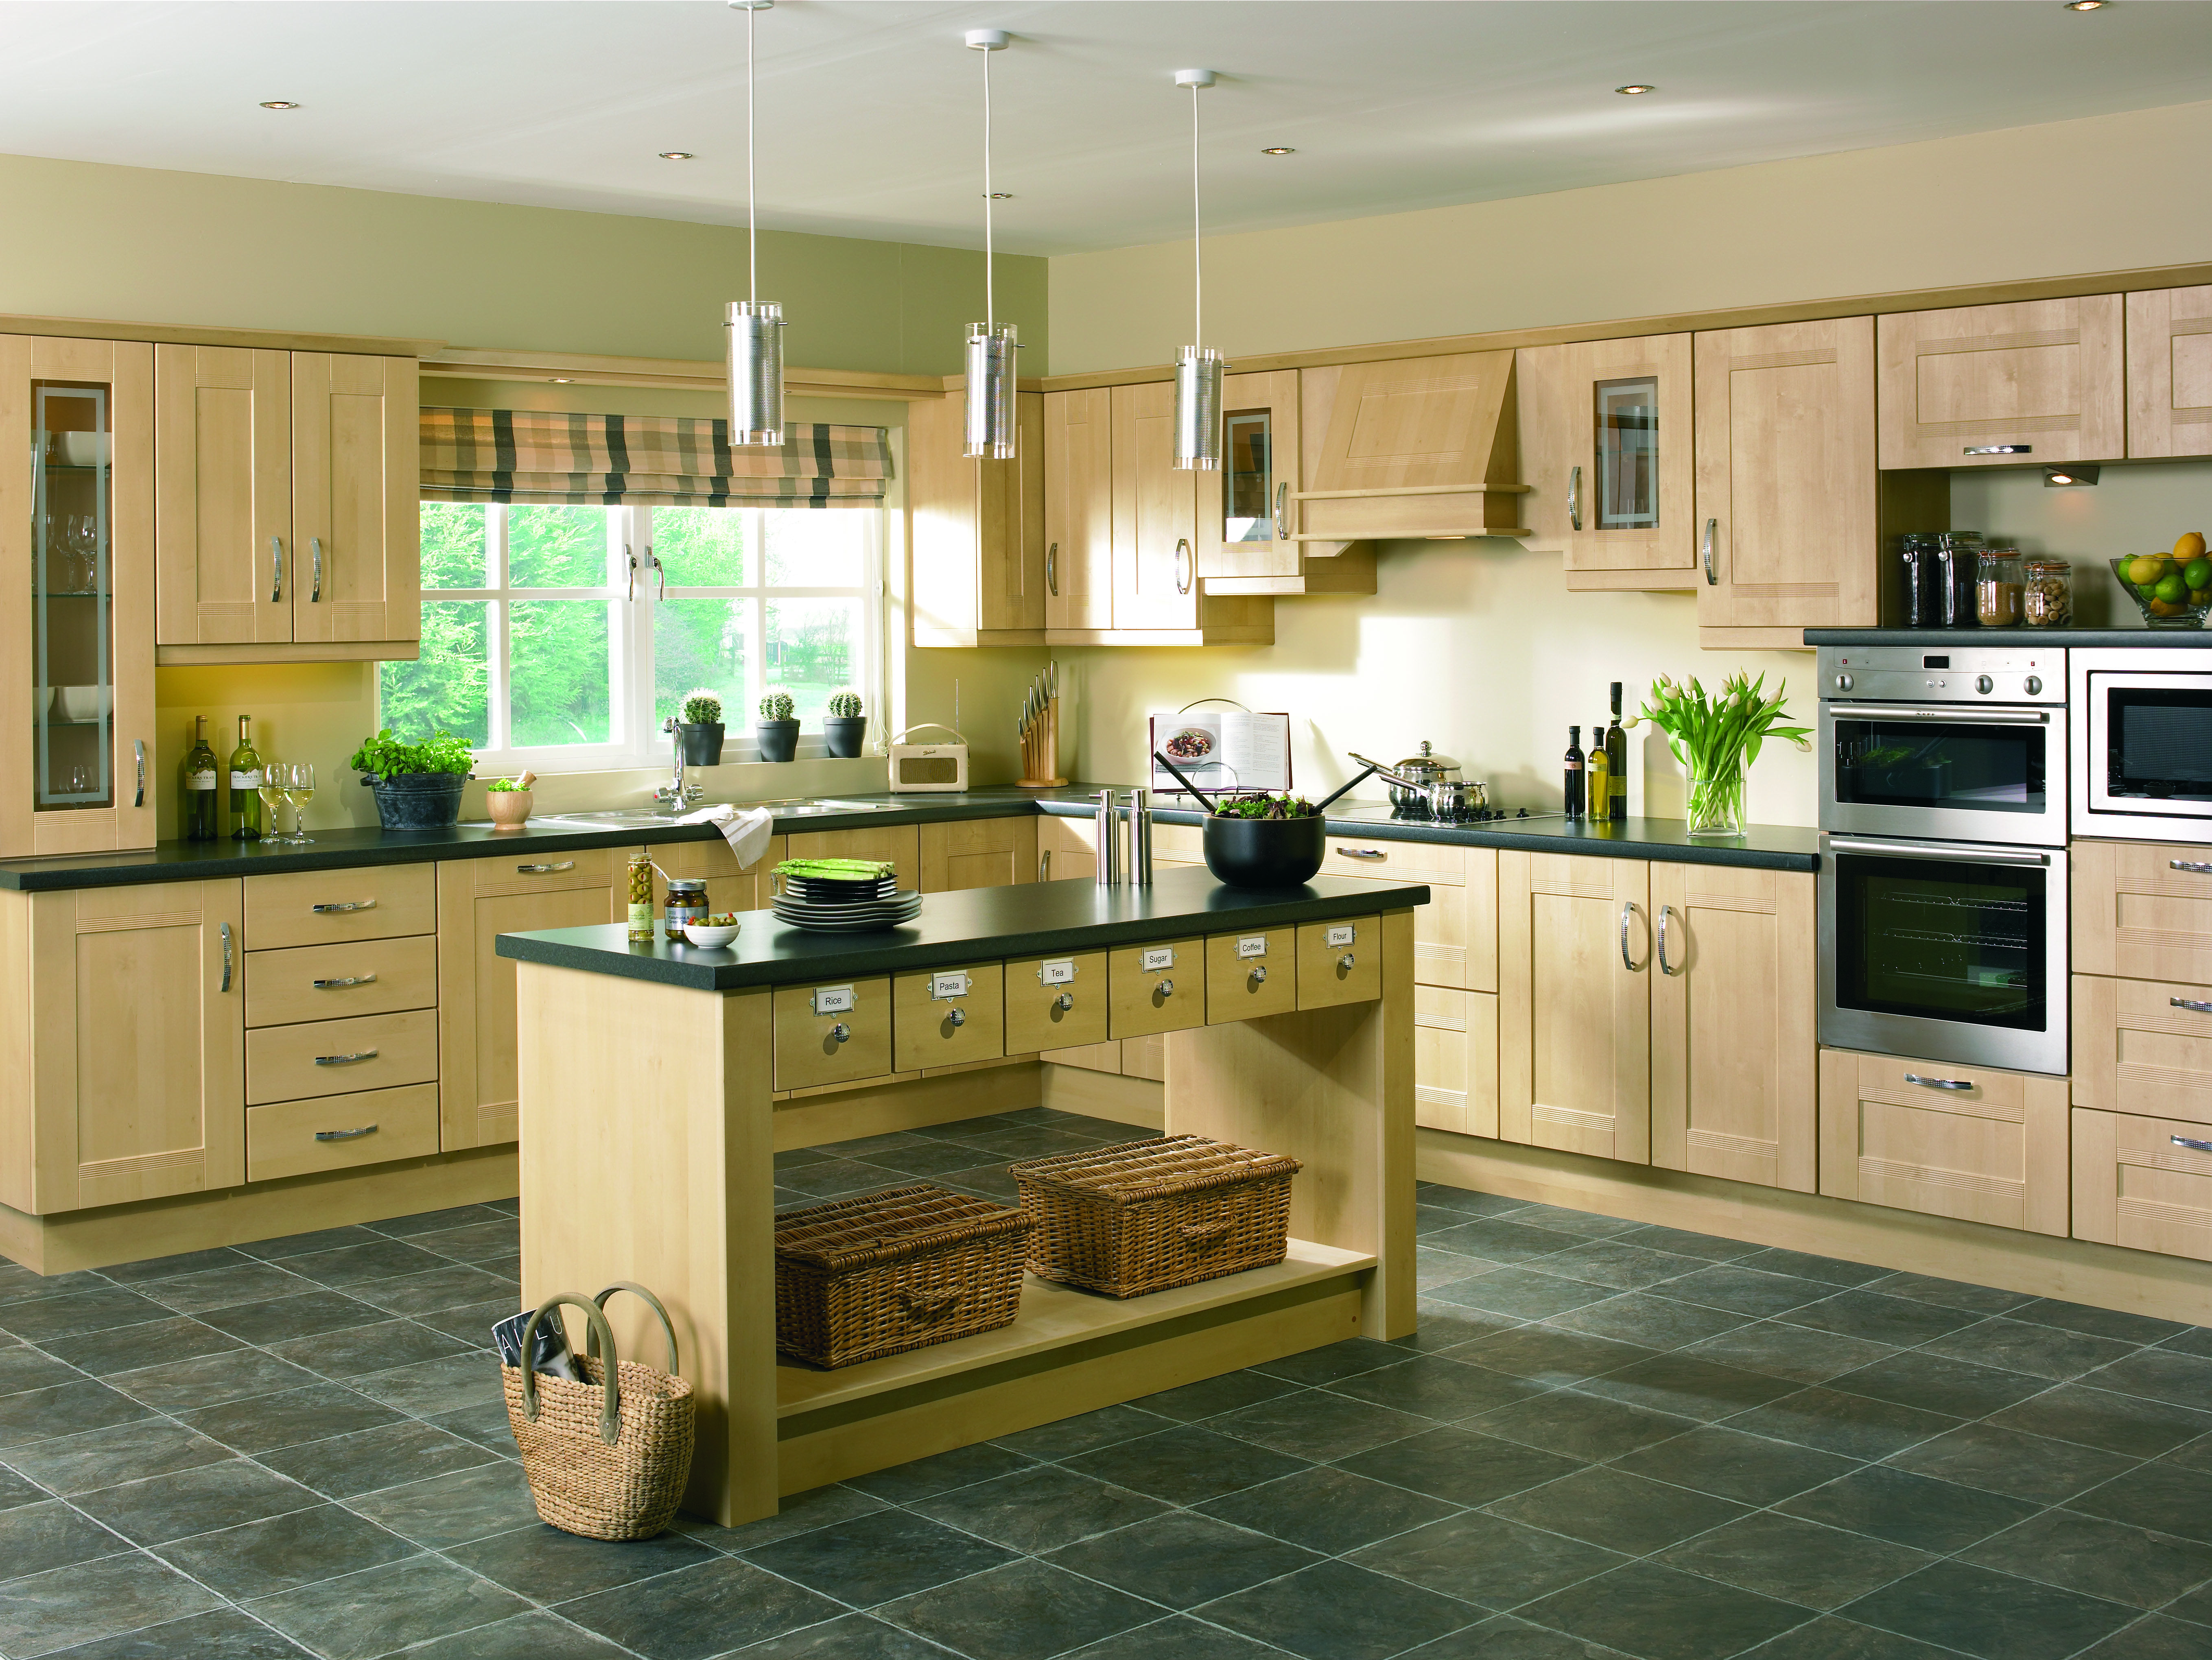 Perfect for a family home. Beech kitchen Birch